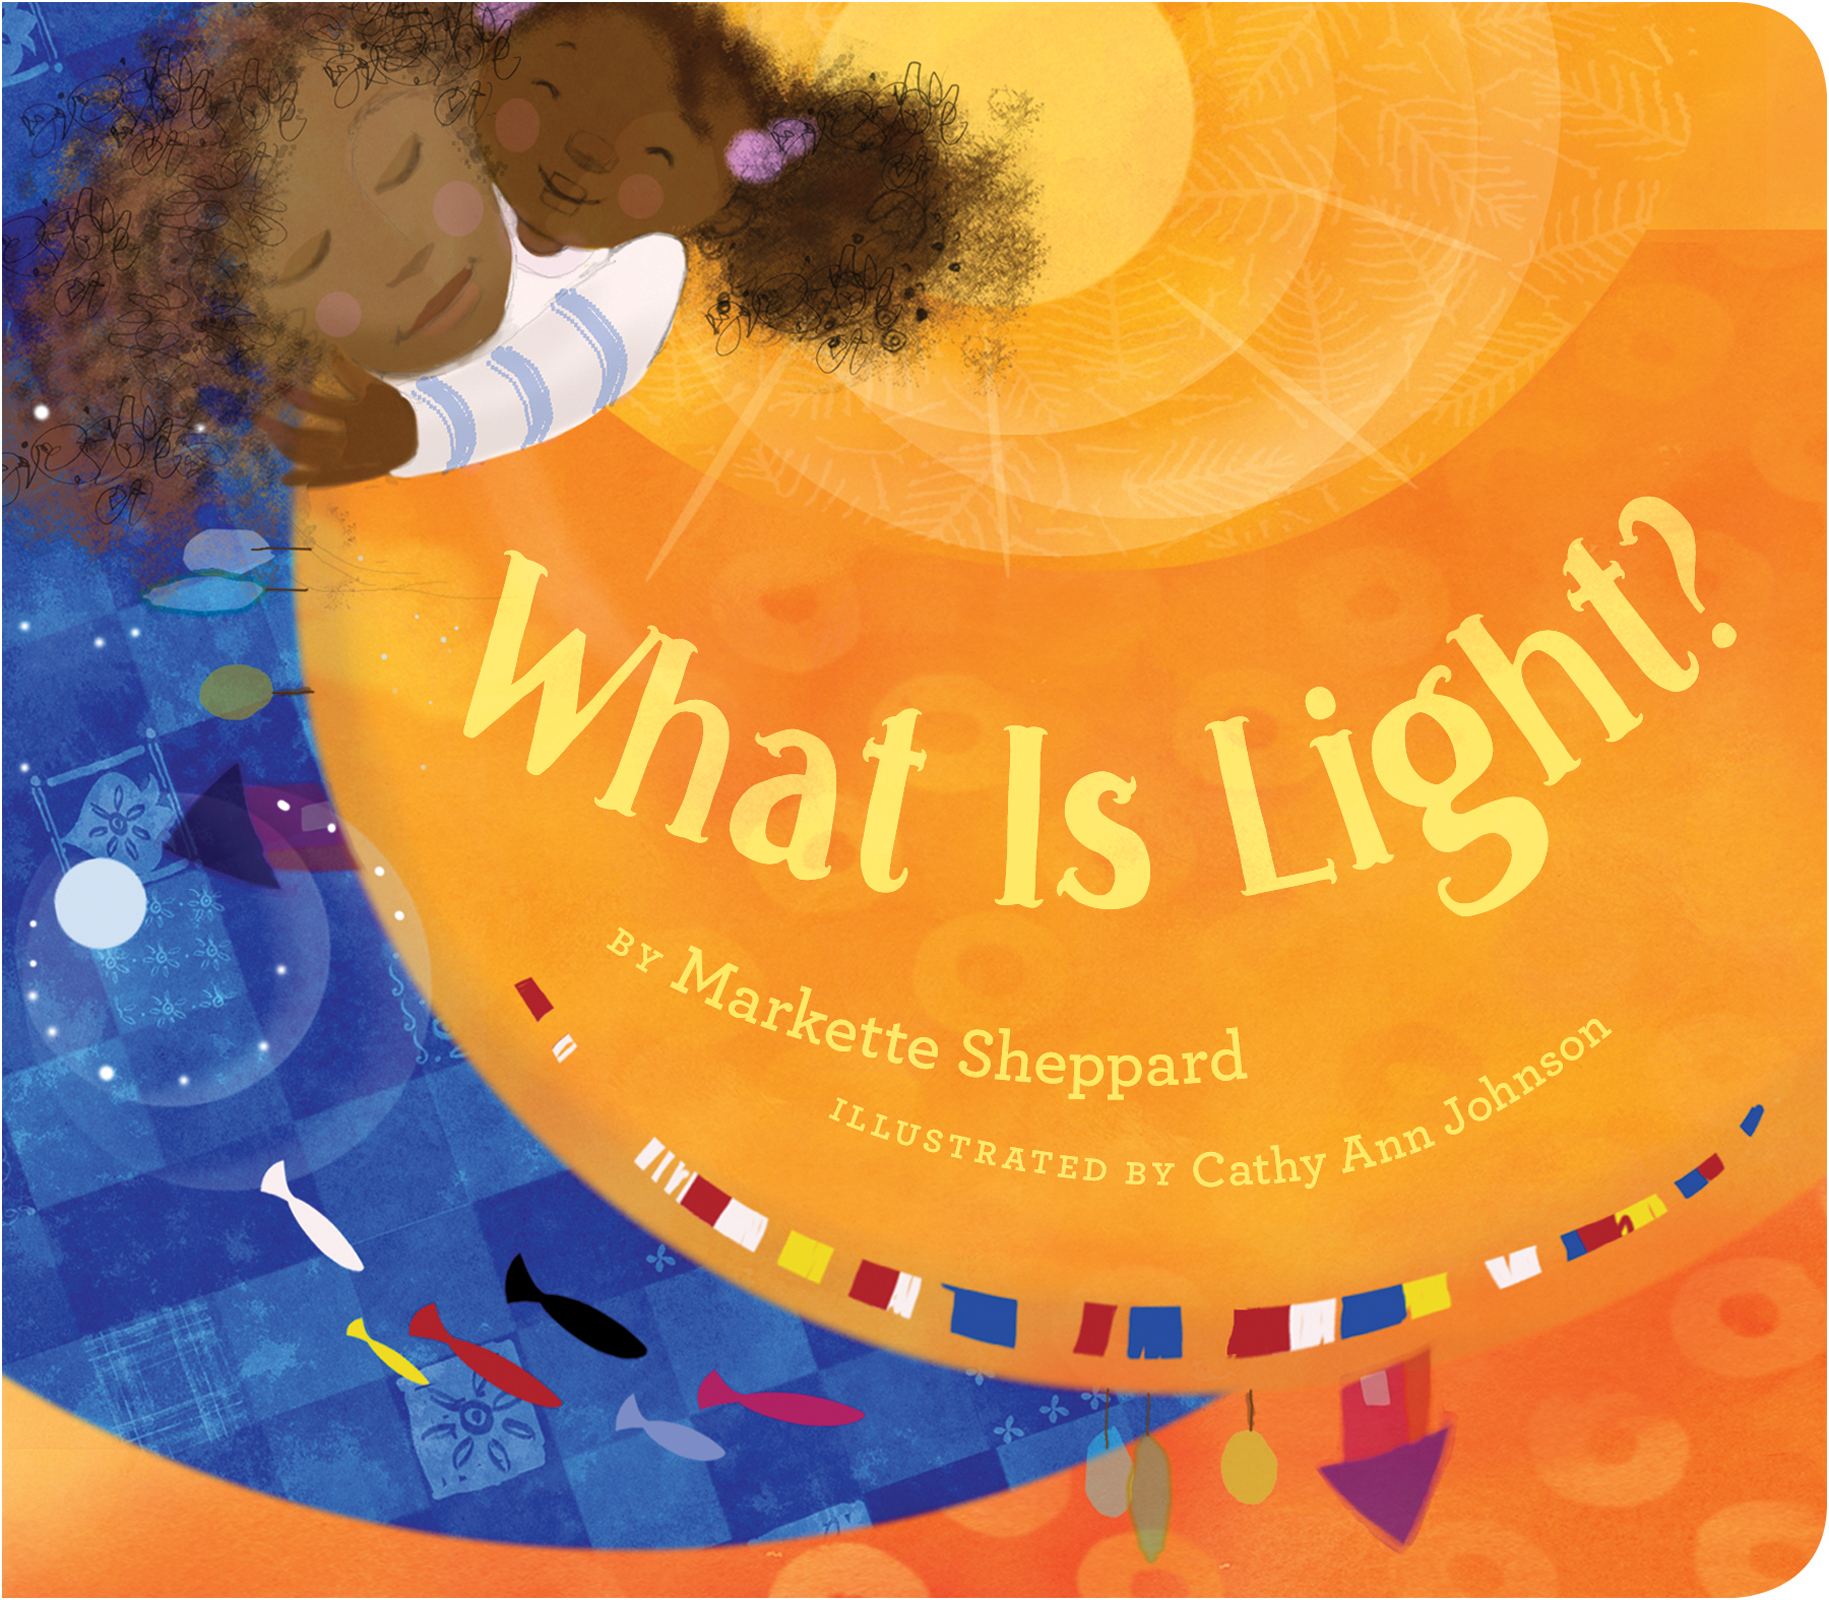 Children's Books Are The Future — What Is Light? Author Markette Shepperd on Inspiring Black Kids